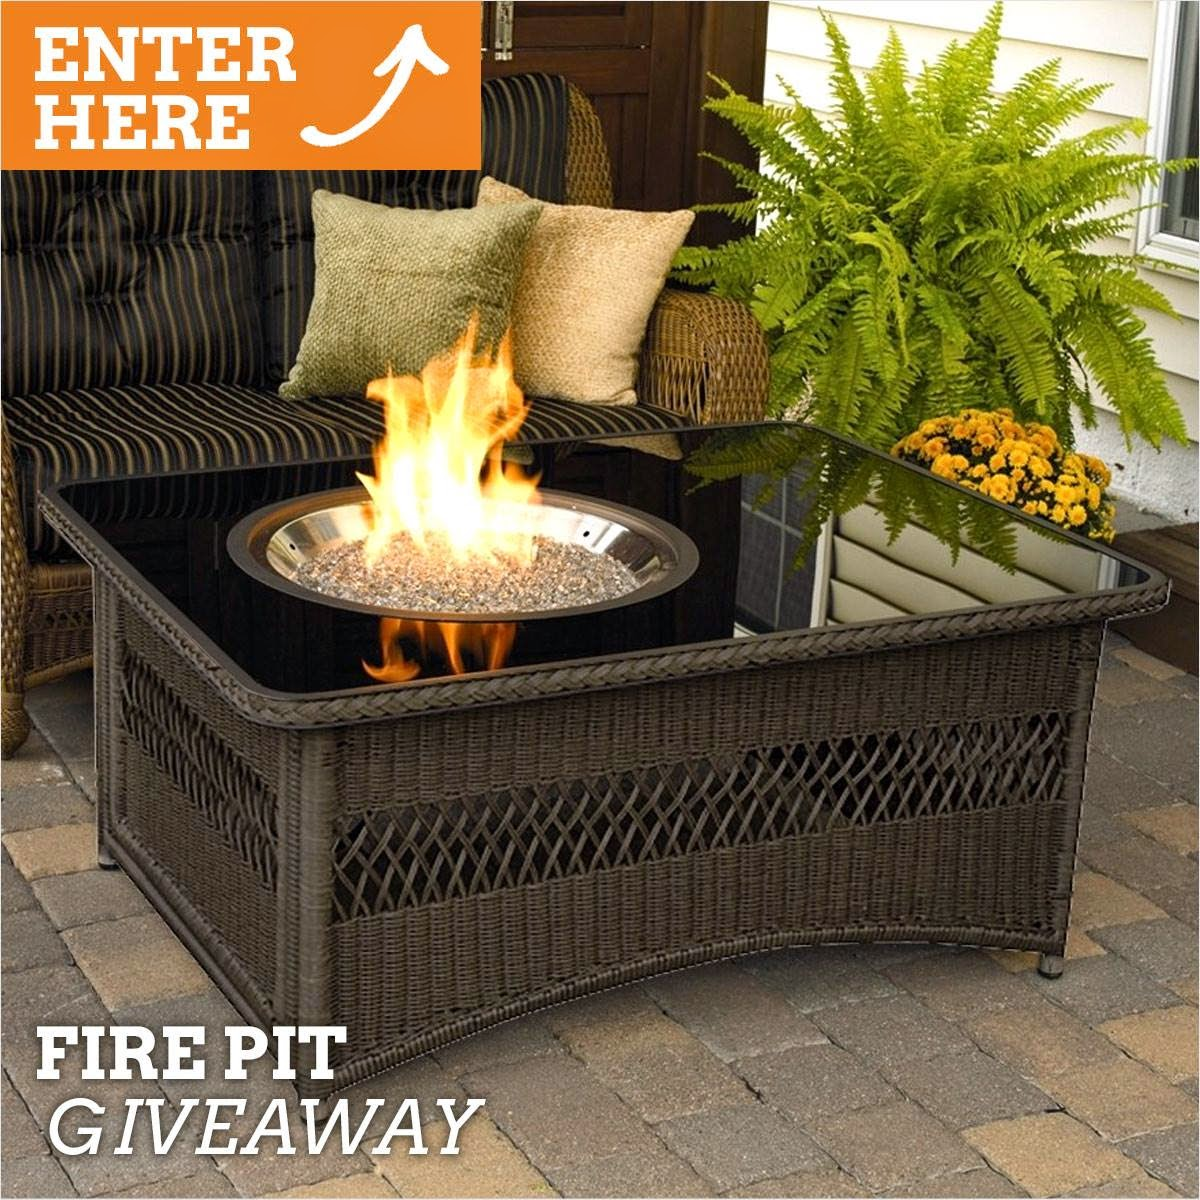 Win a Fire Pit from Wayfair. Ends 7/21